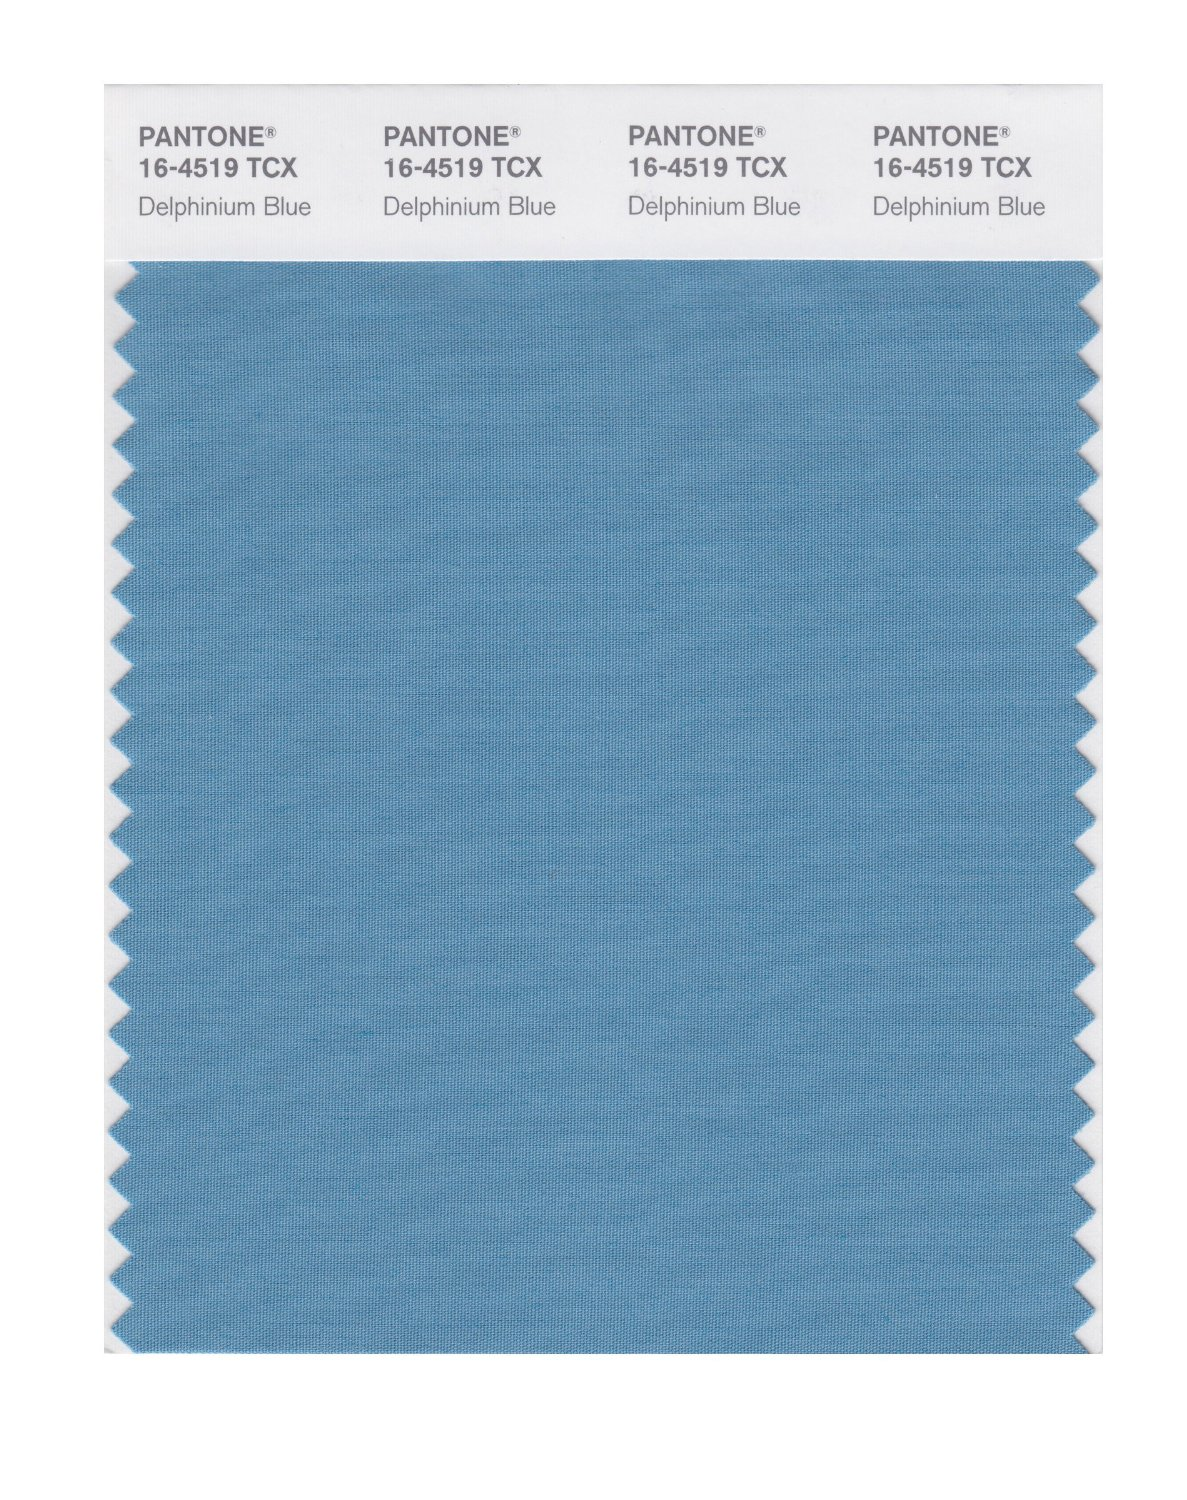 Pantone Smart Swatch 16-4519 Delphinium Blue